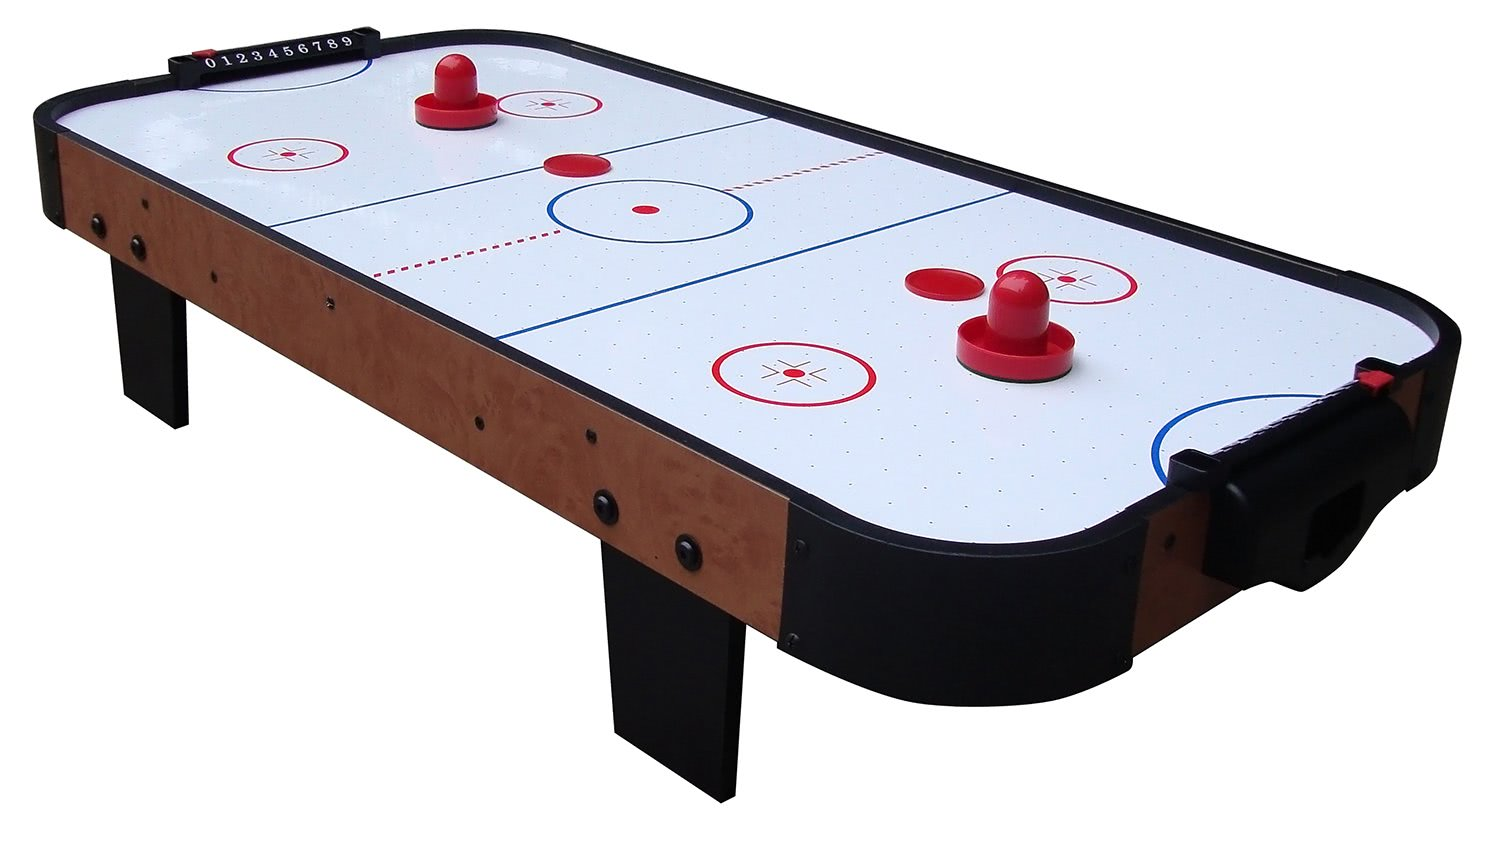 Gamesson wasp ii air hockey table liberty games for Table hockey